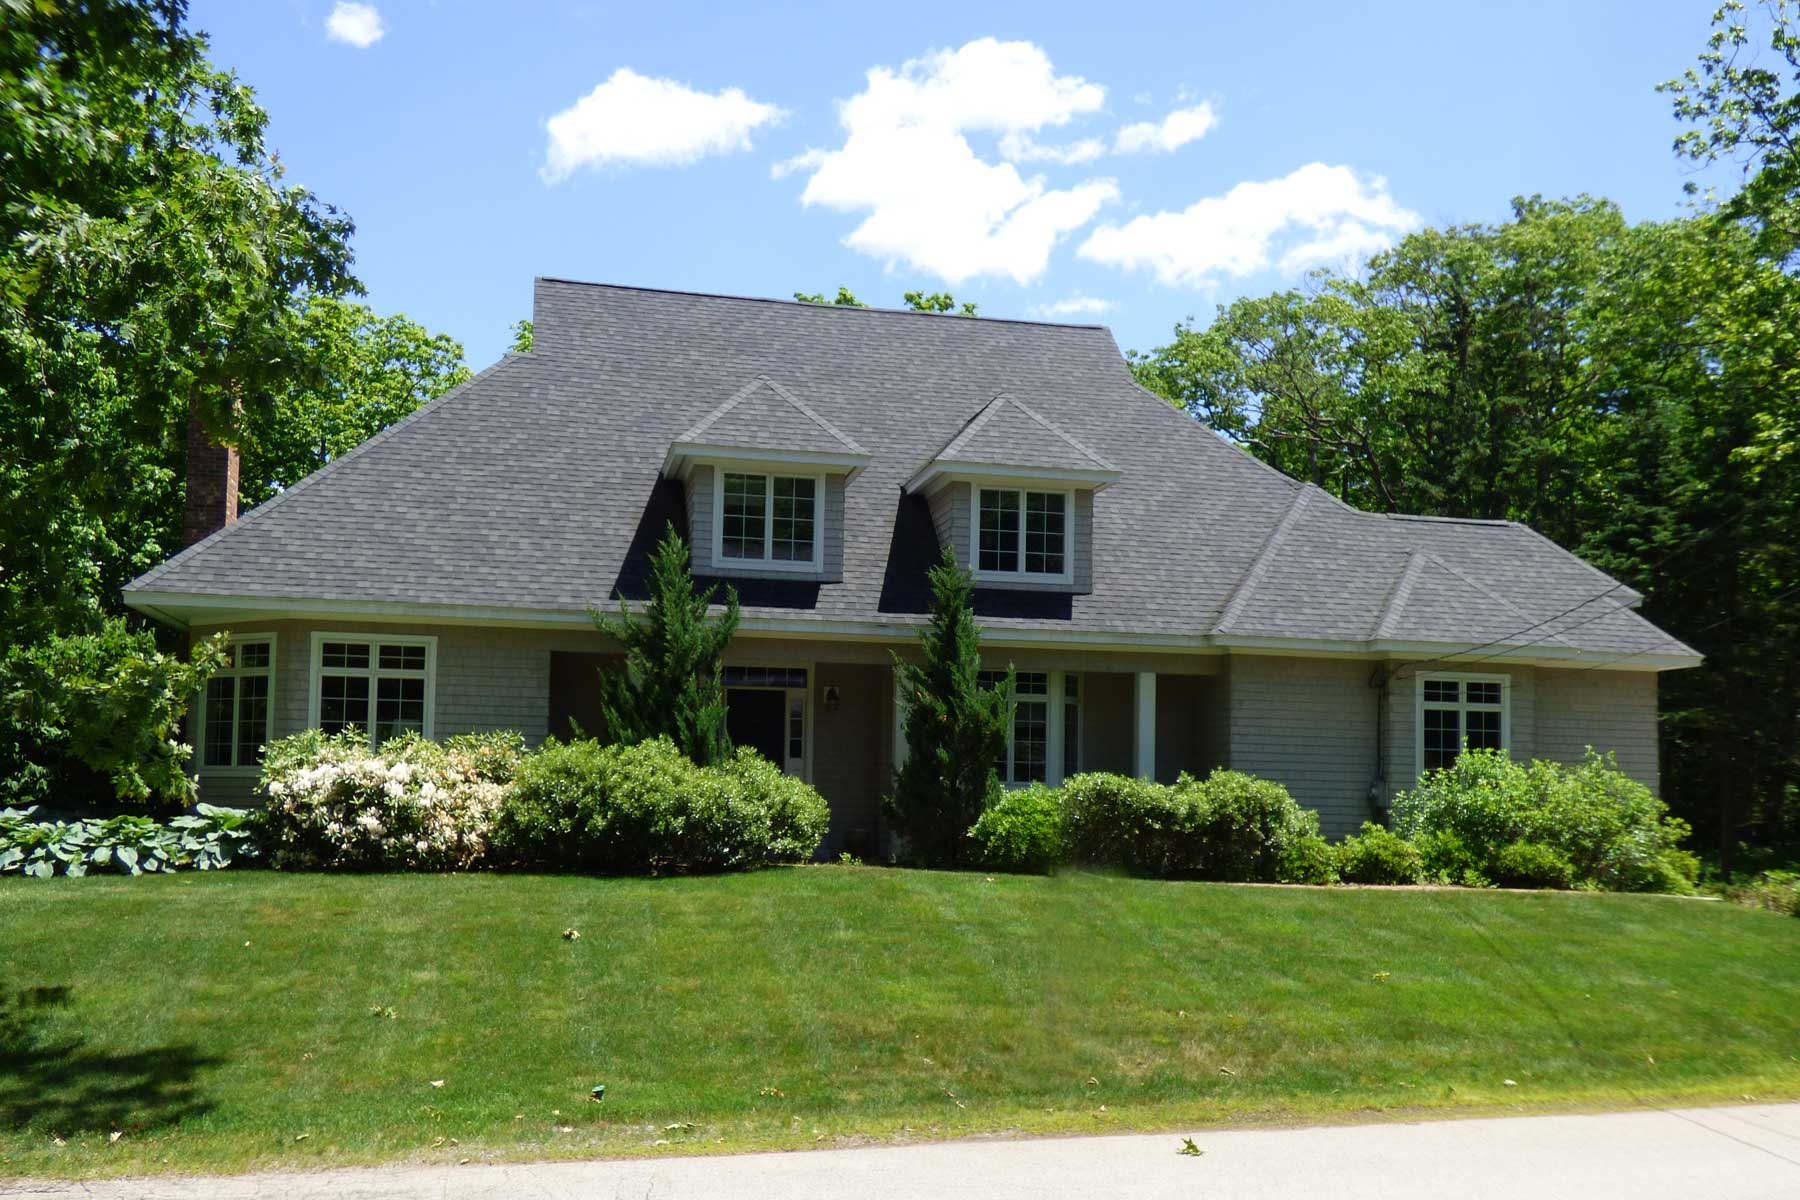 Single Family Home for Sale at York Harbor Ocean View Shingle Style 61 Norwood Farms Road York, Maine, 03911 United States